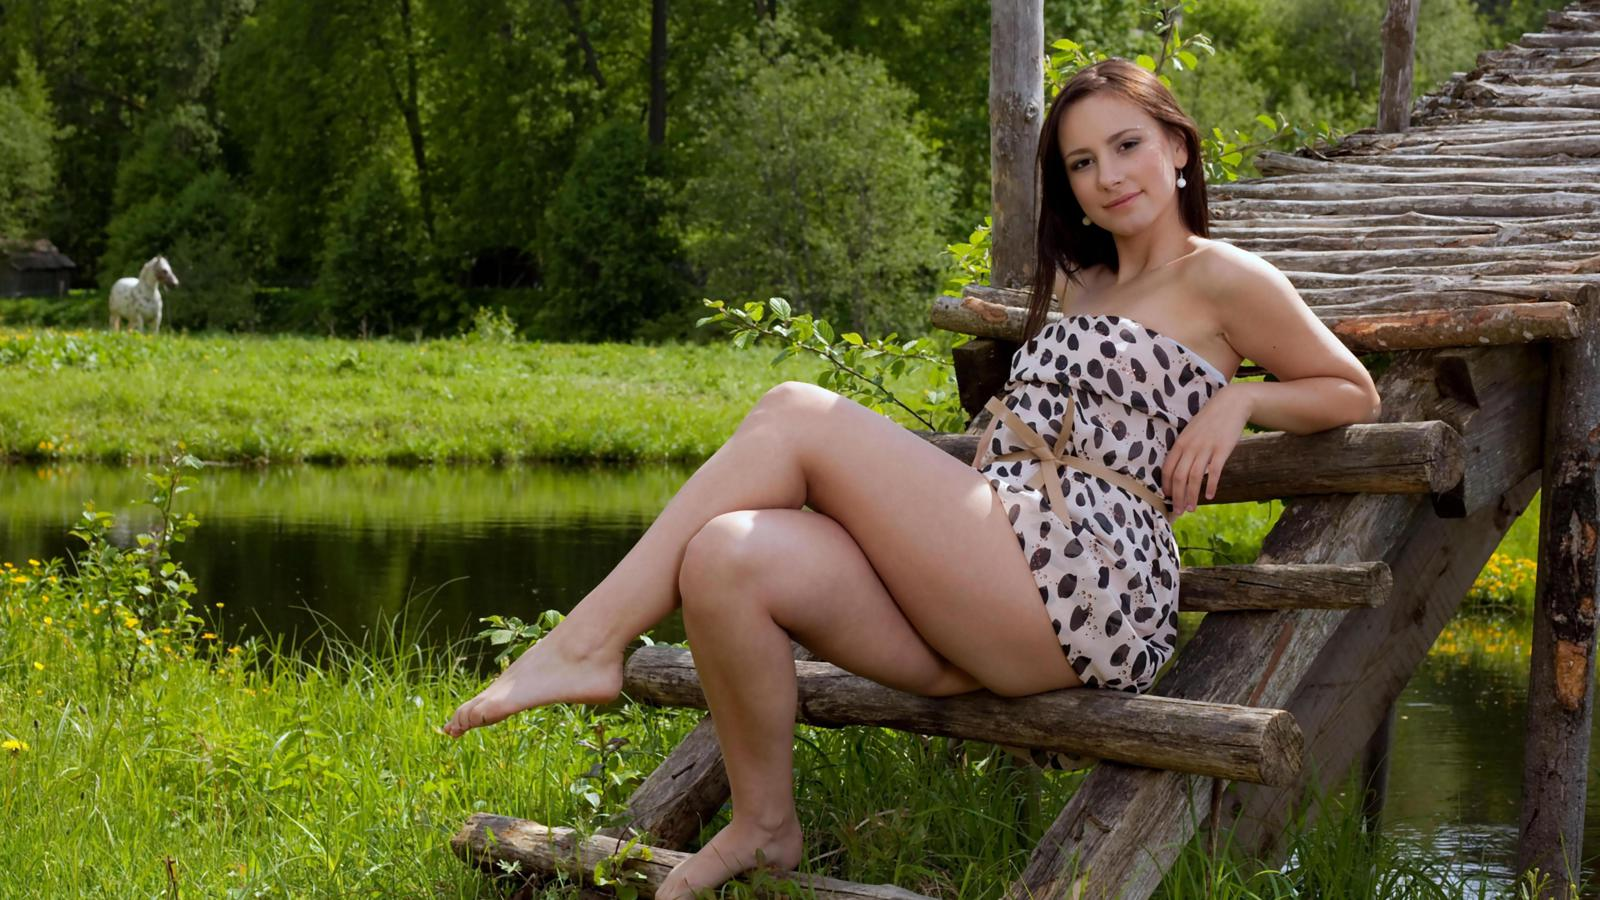 Download photo 1600x900, rosalin, sexy lady, nude, naked